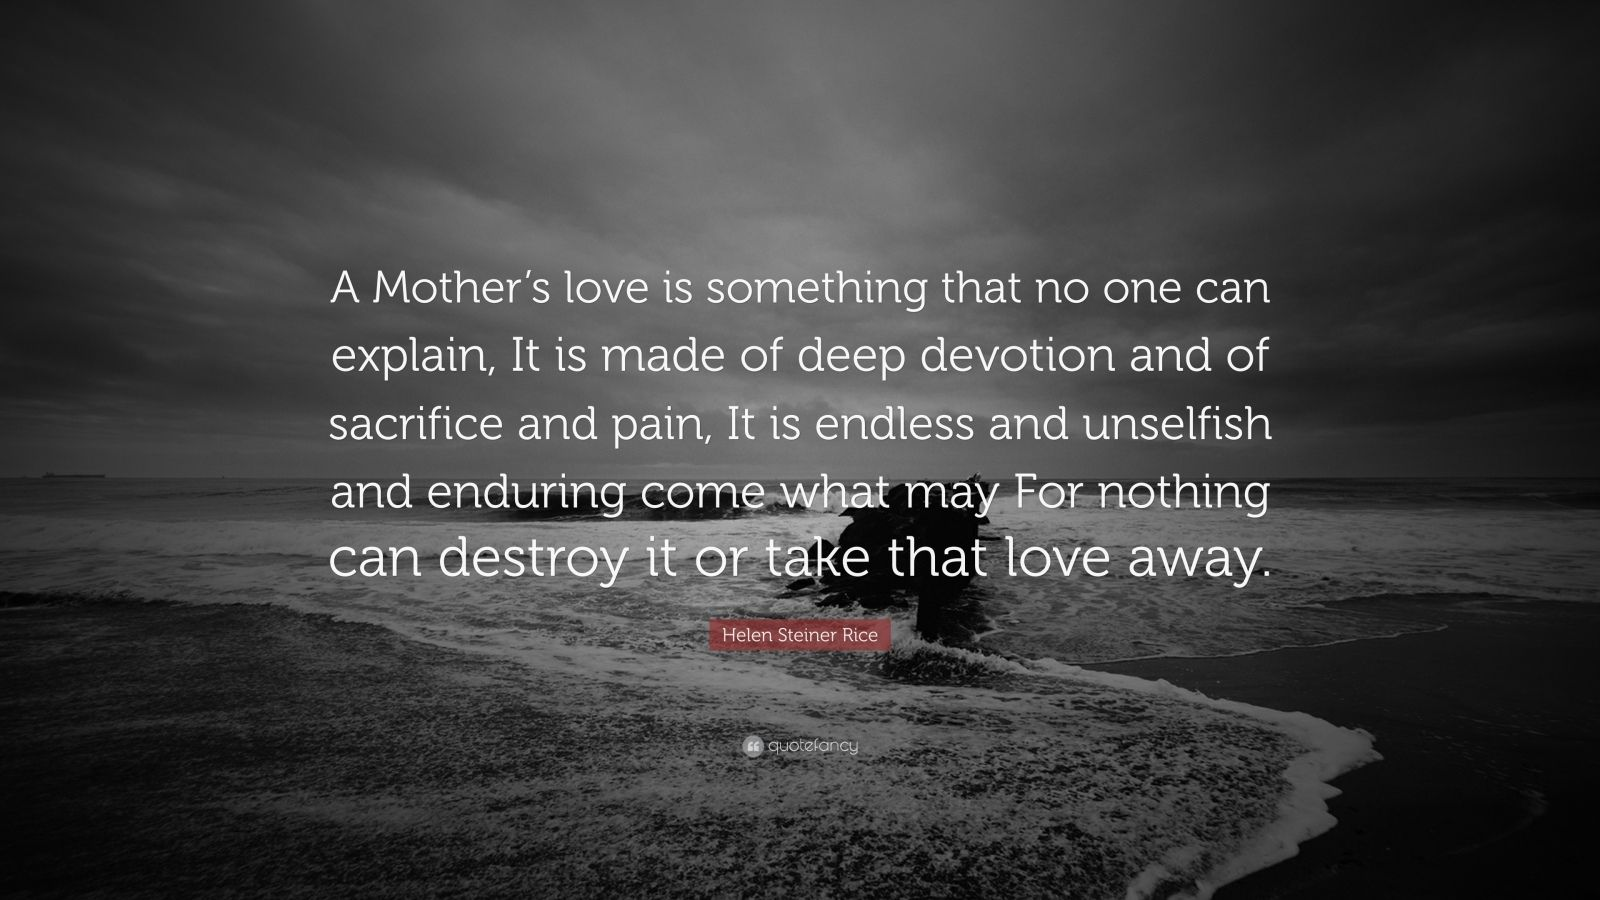 """Helen Steiner Rice Quote: """"A Mother's love is something that no one can explain, It is made of deep devotion and of sacrifice and pain, It is endless and unselfish and enduring come what may For nothing can destroy it or take that love away."""""""